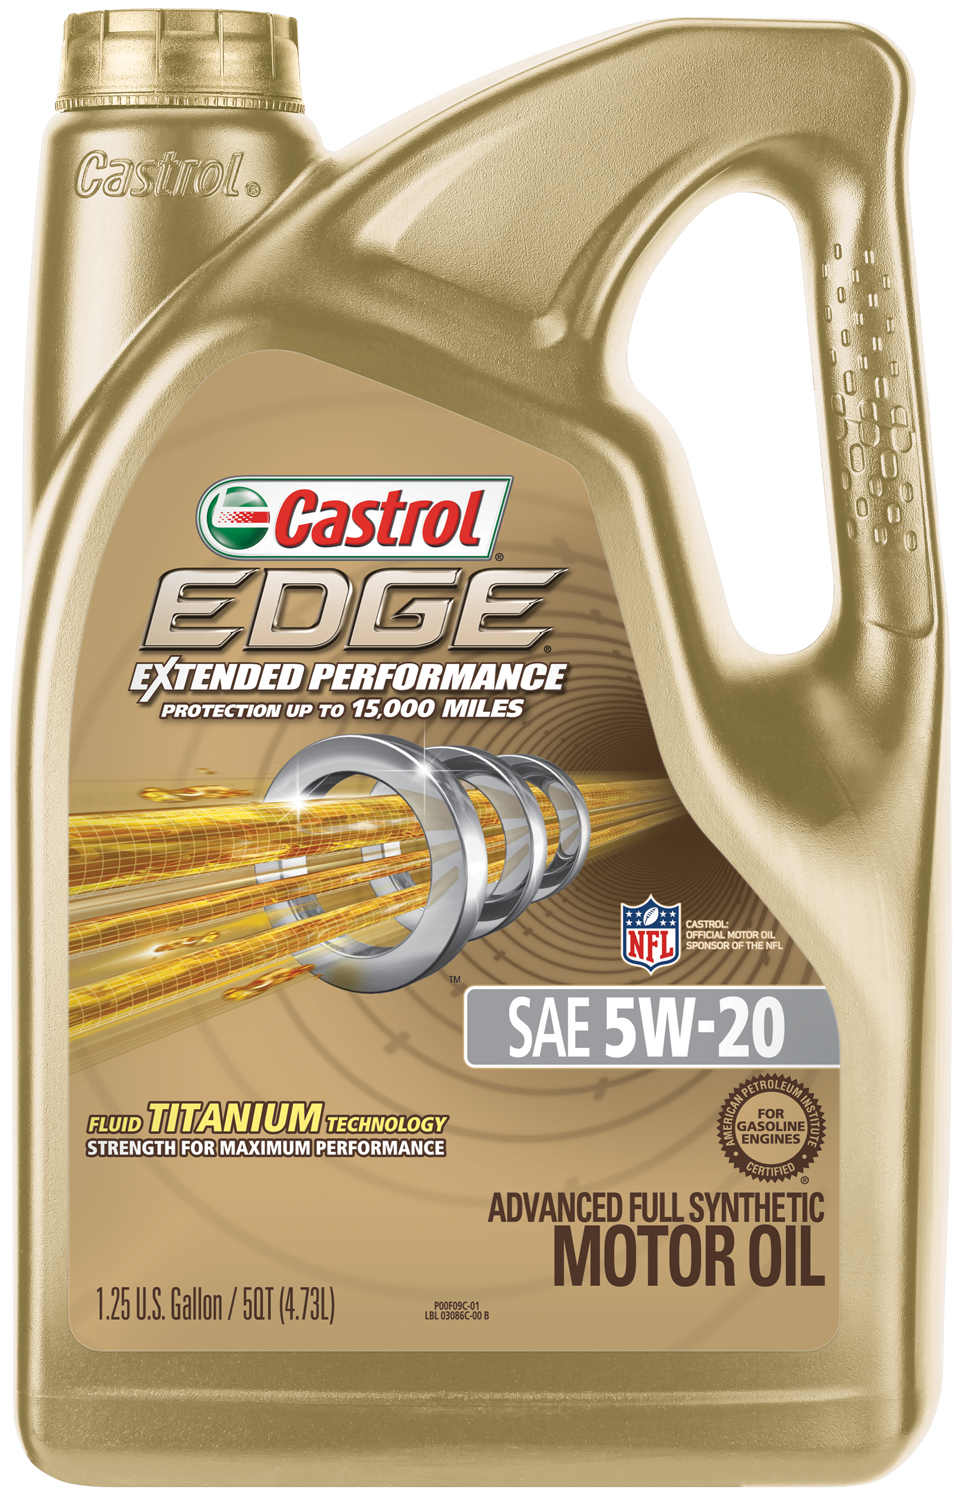 Castrol EDGE Extended Performance 5W-20 Full Synthetic Motor Oil, 5 QT by Castrol